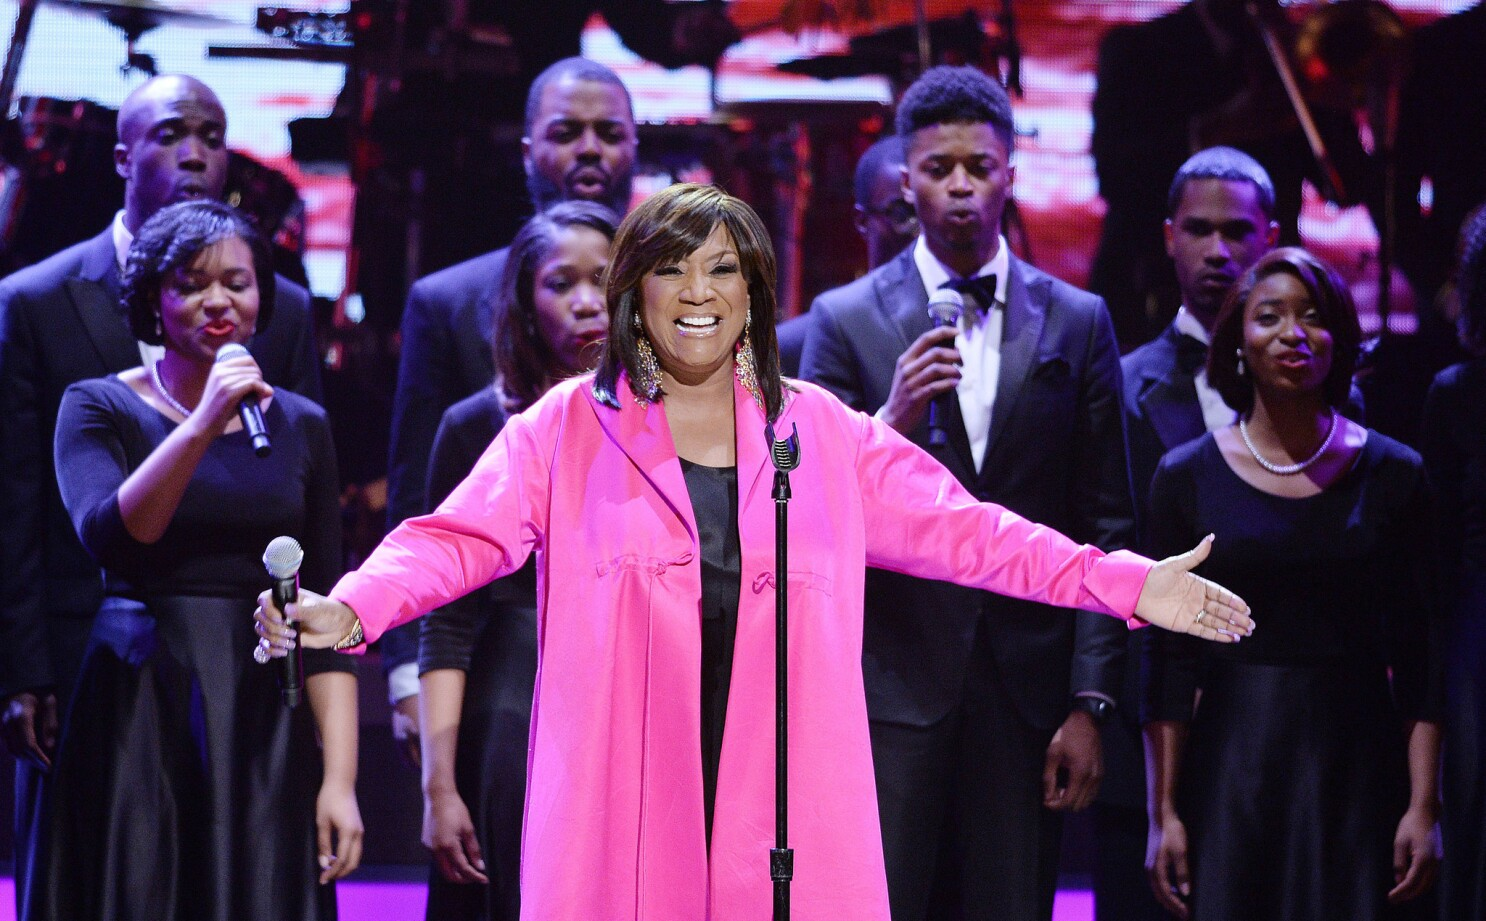 Patti LaBelle, still cooking up a storm, to sing Thursday at The Magnolia in El Cajon